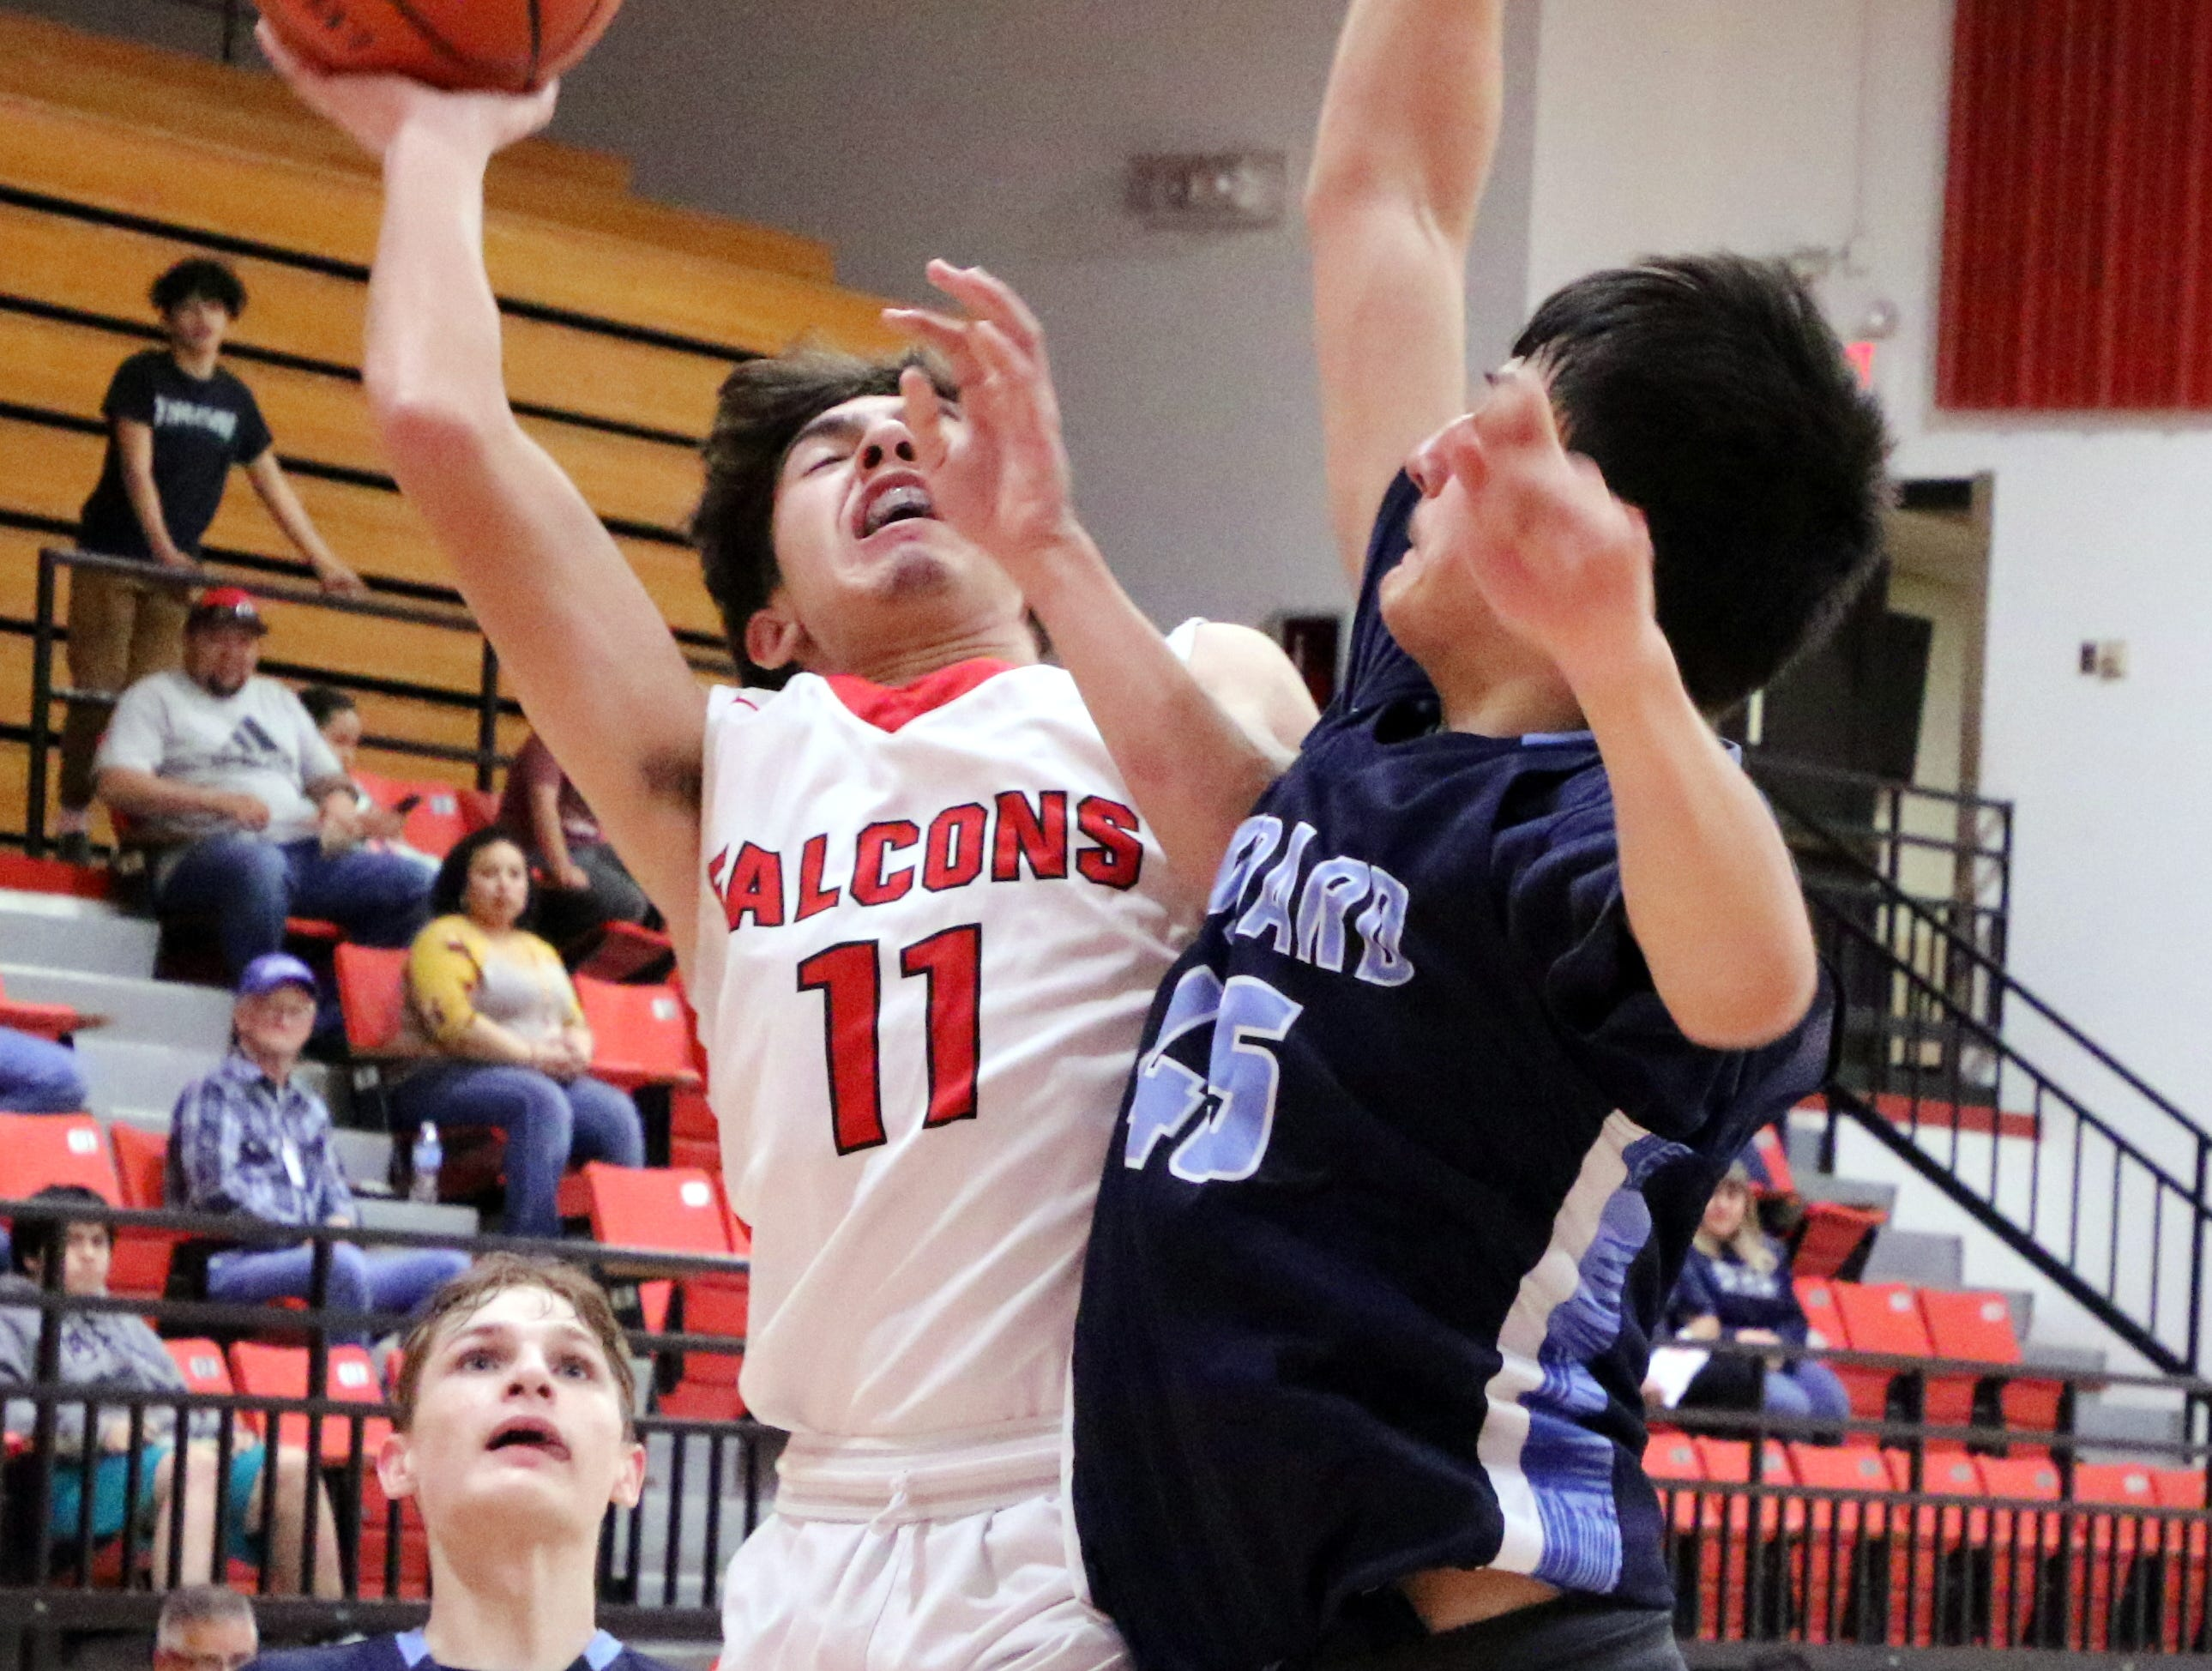 Michael Murillo goes for a layup during Saturday's game against Goddard.